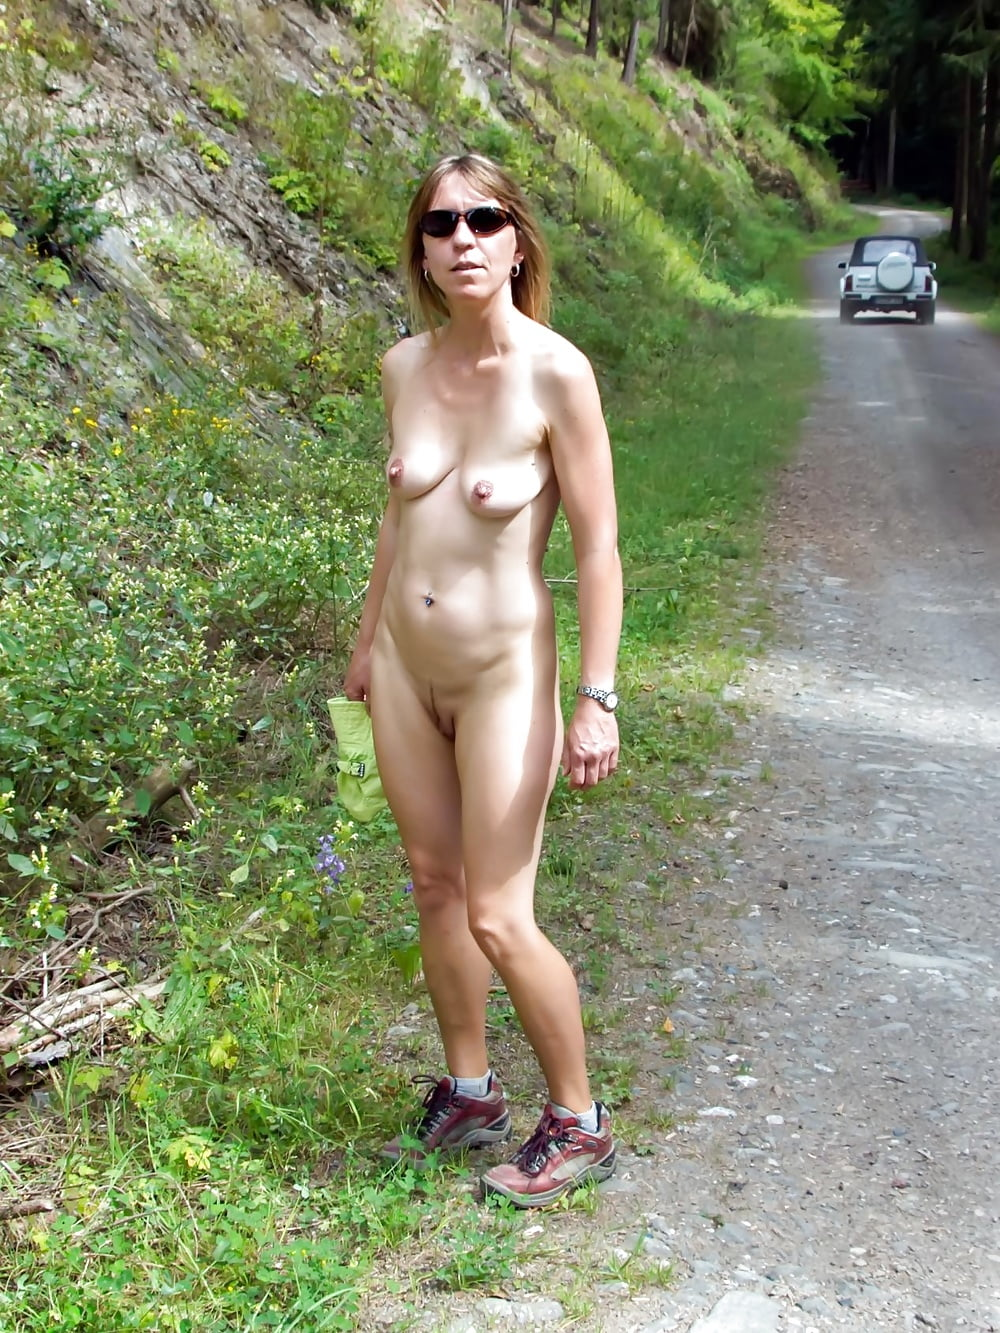 Submitted pics of horny amateur girl naked outdoors